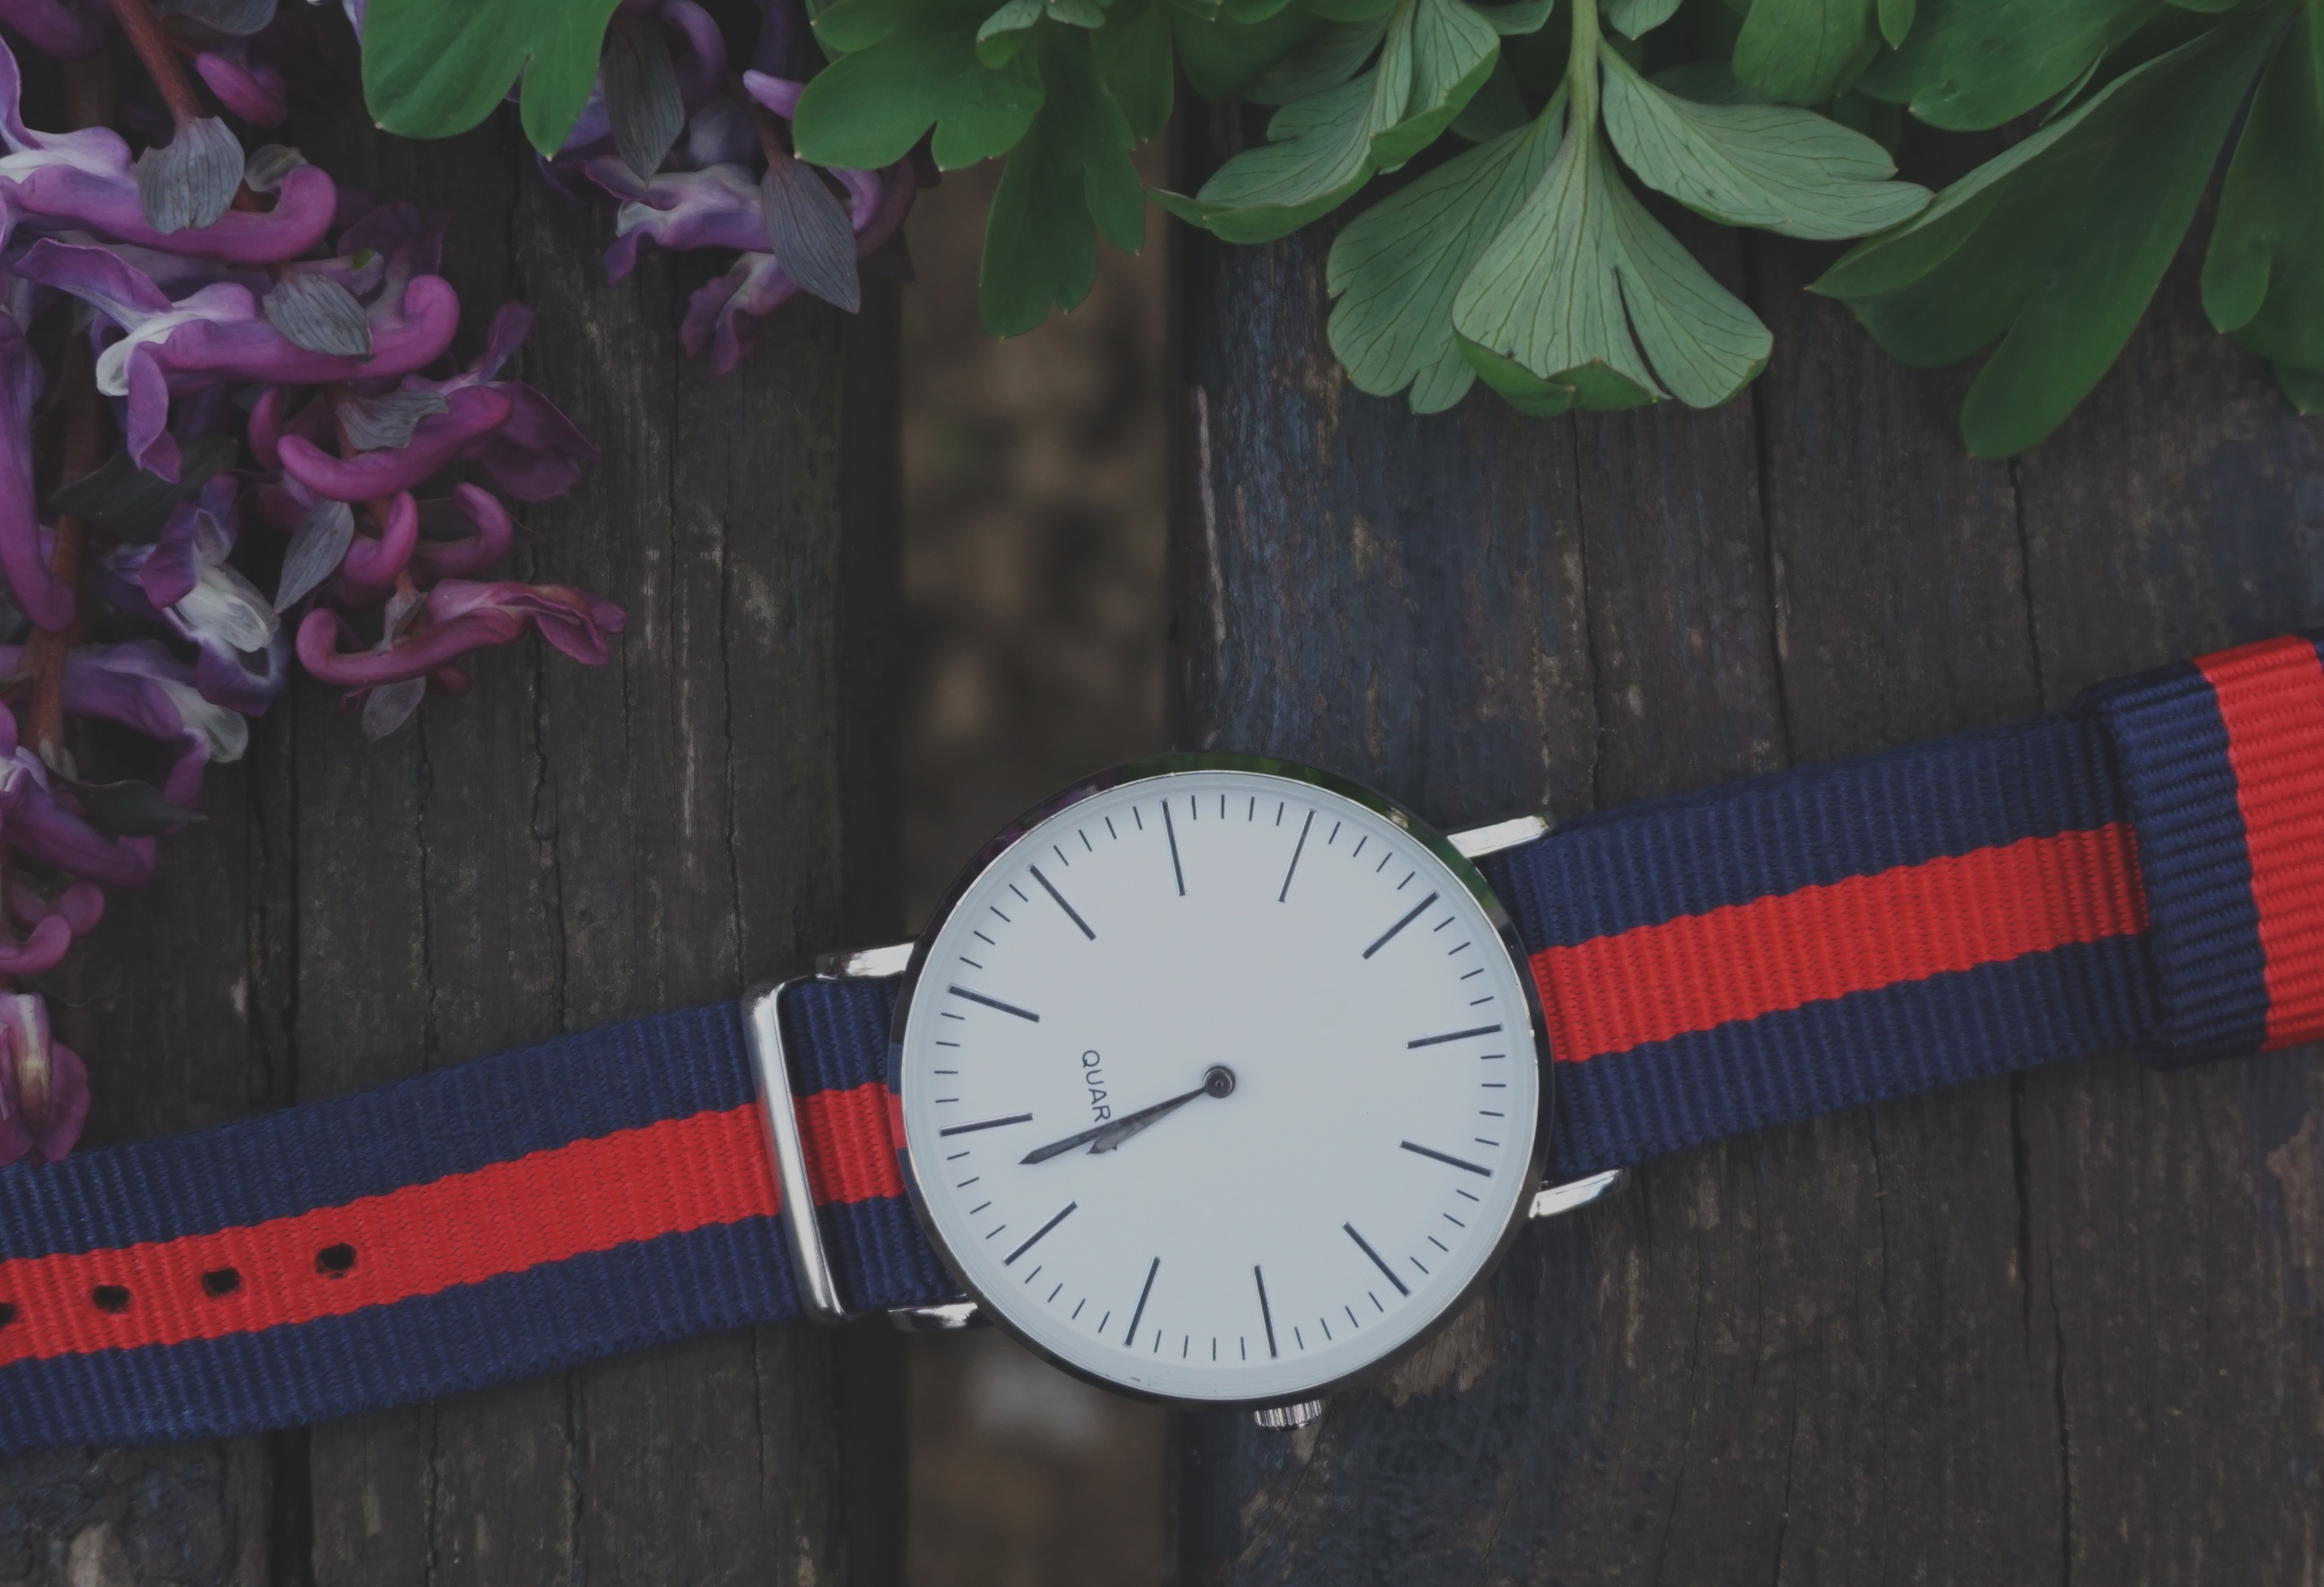 blue and red strap silver round analog watch beside purple